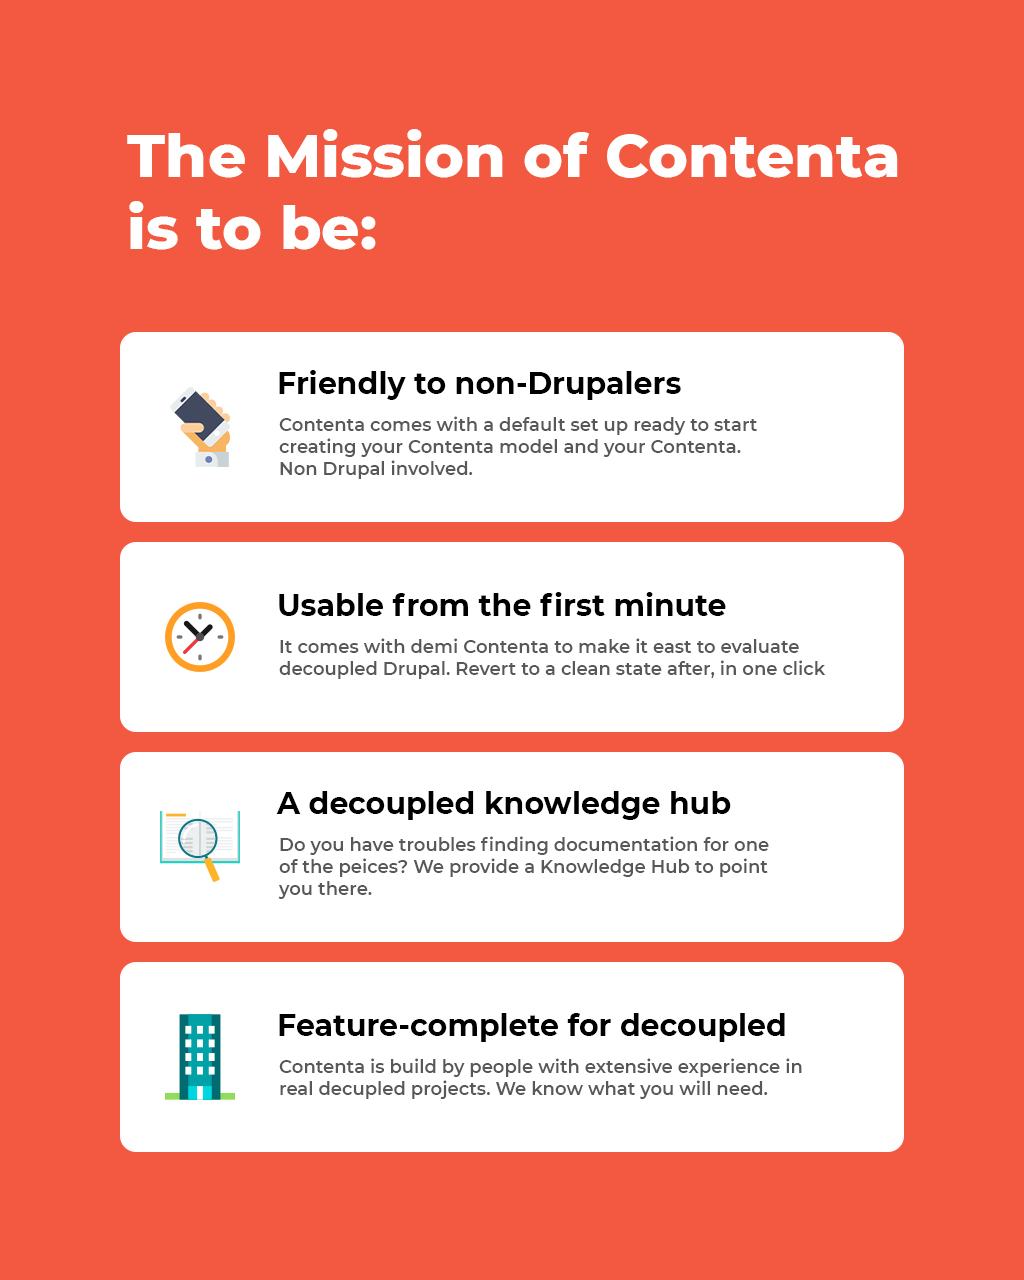 illustration image showing the for mission statements for contenta in a text format in orange and white colours